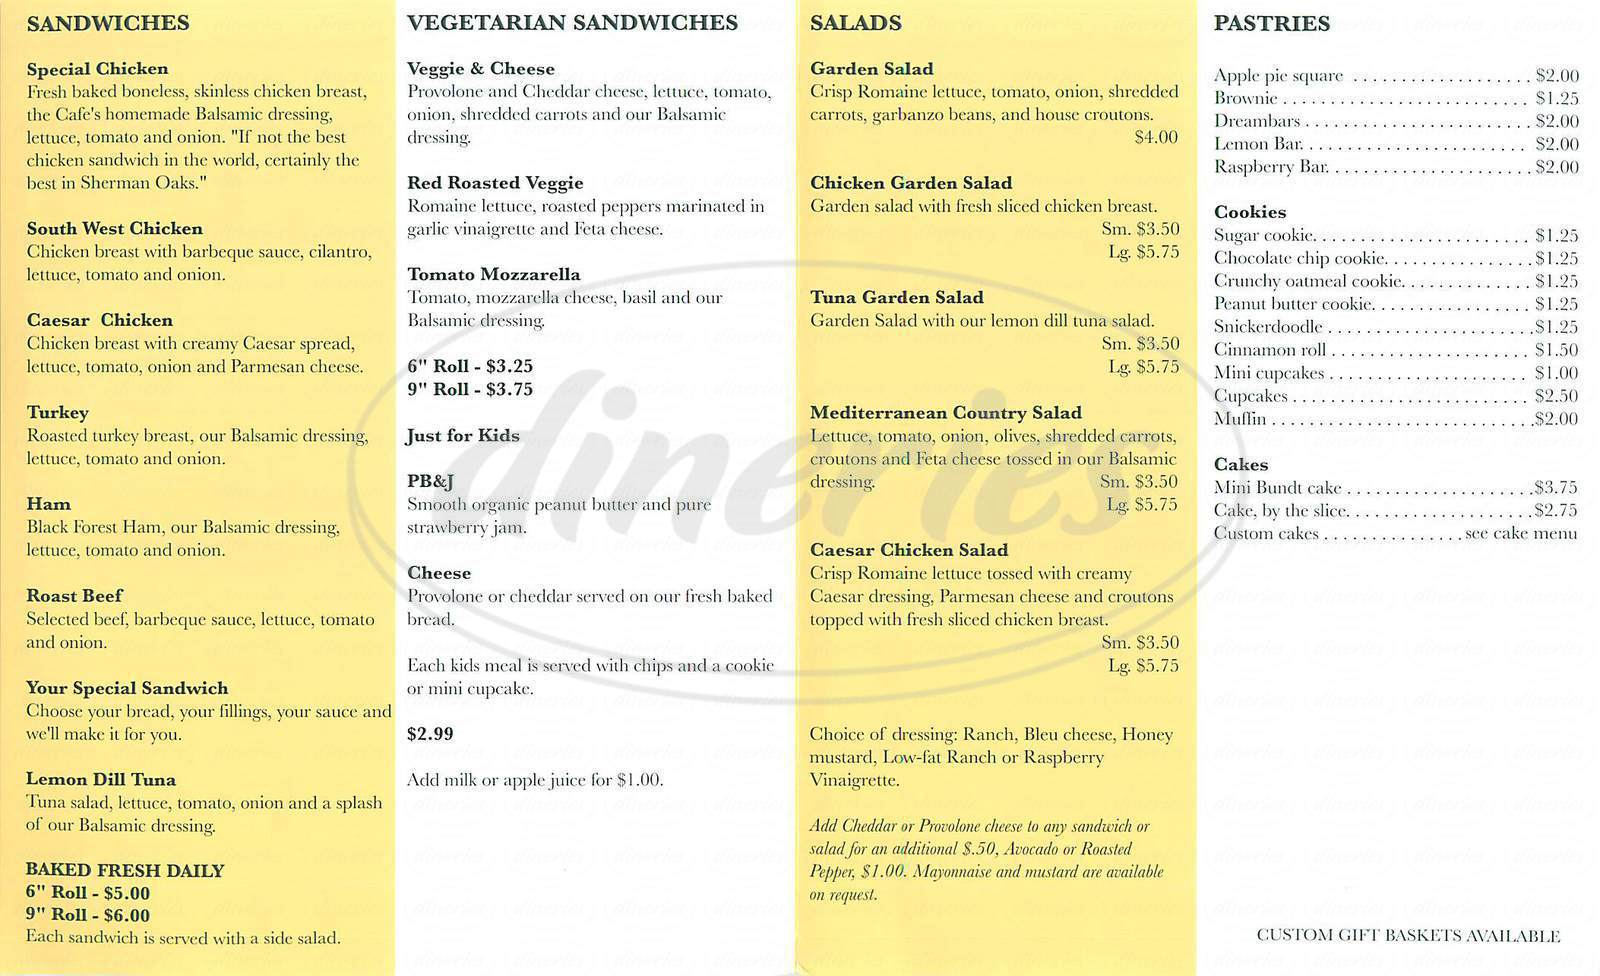 menu for Cafe Unforgettable Cakes